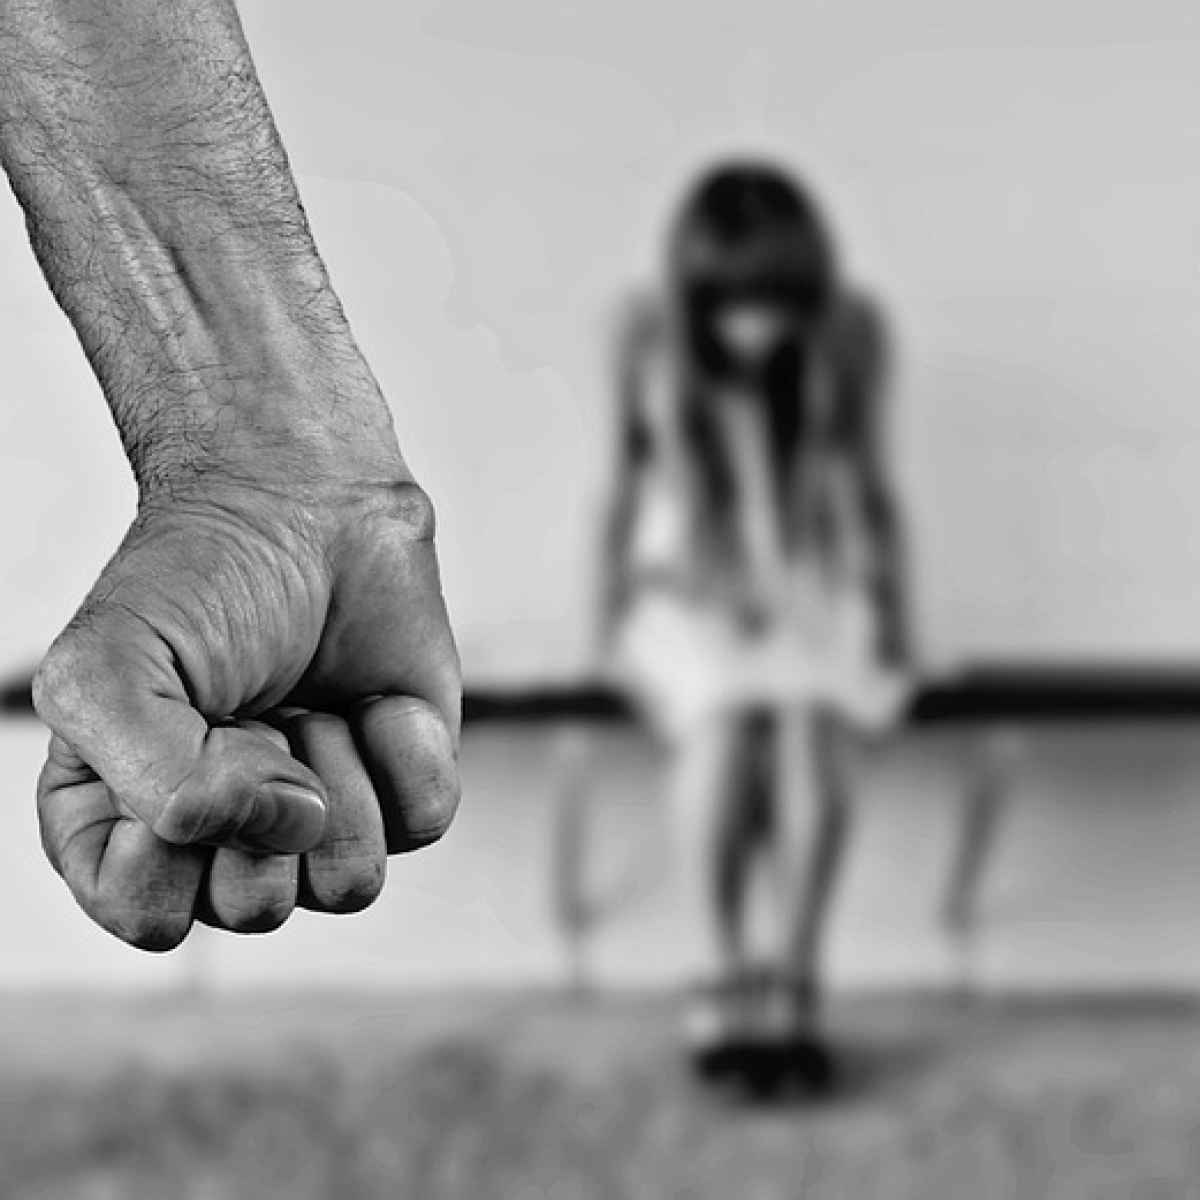 Thiruvananthapuram woman gangraped after being forced to drink liquor; five, including husband nabbed